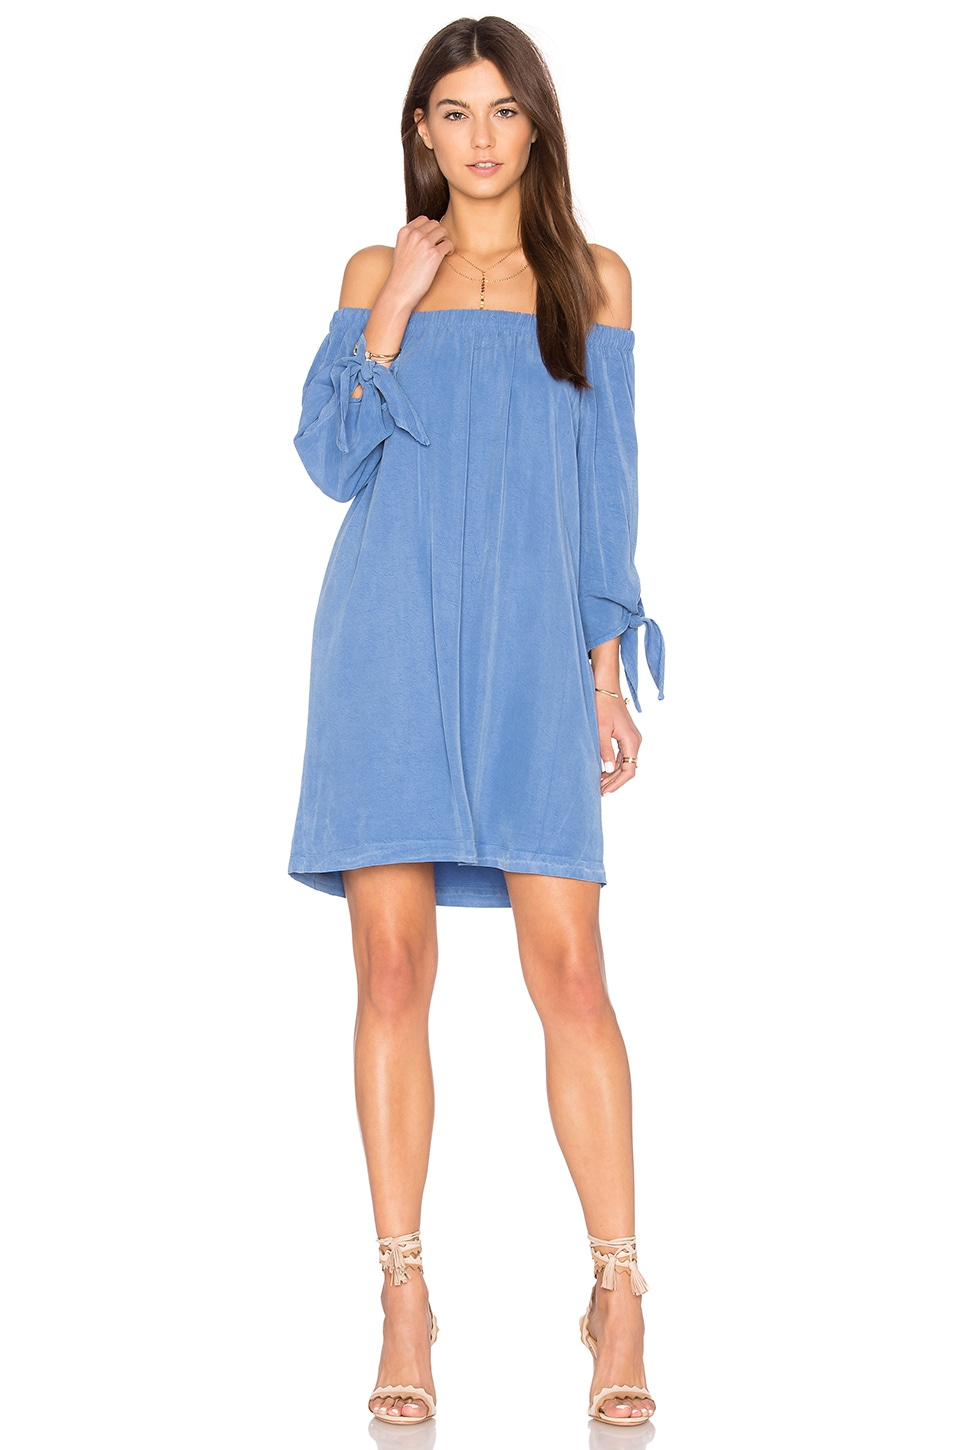 maven west Off Shoulder Knot Dress in Blue